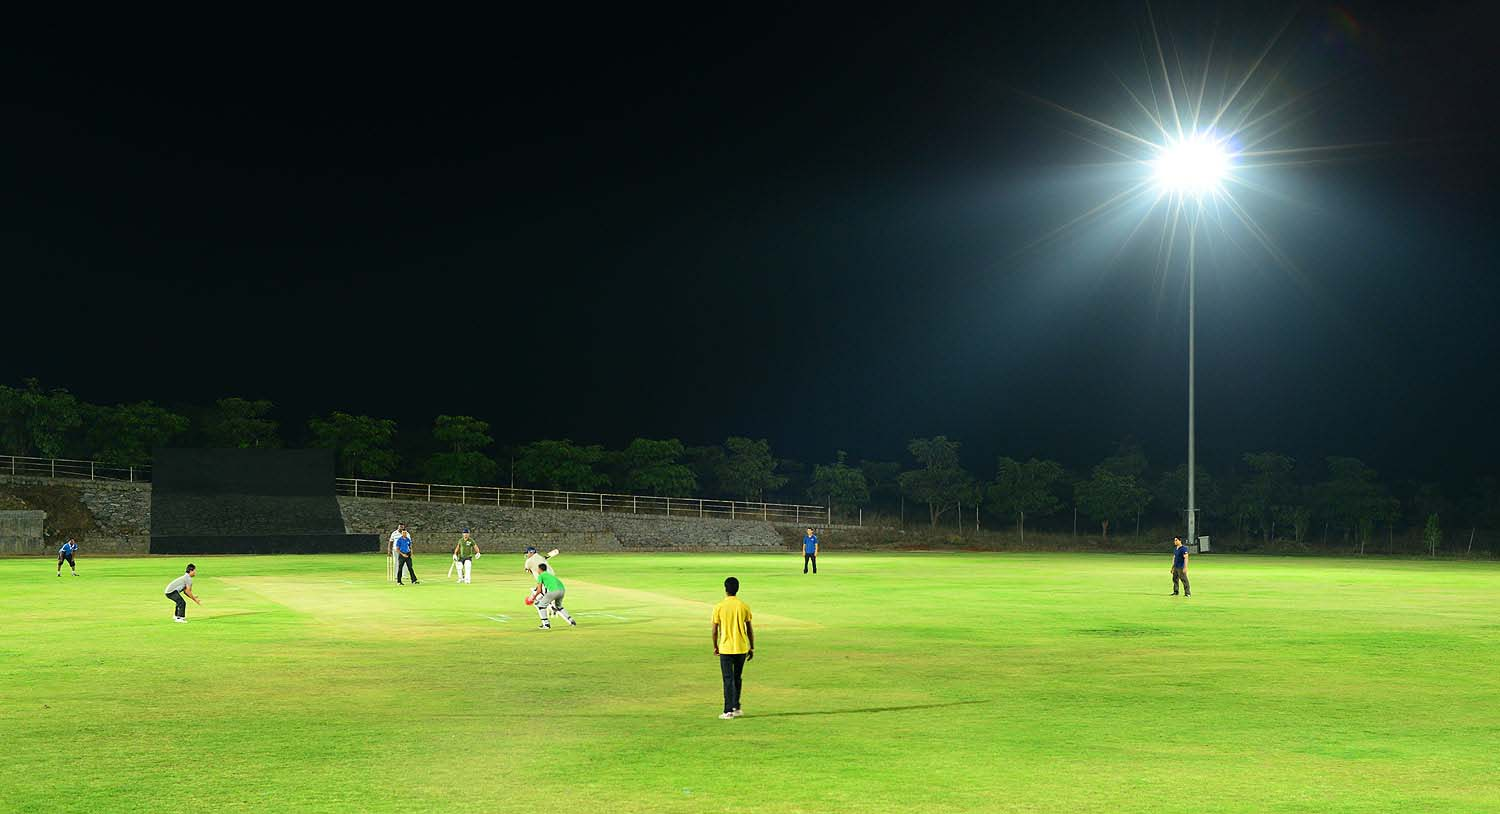 Cricket-stadium-flood-lights